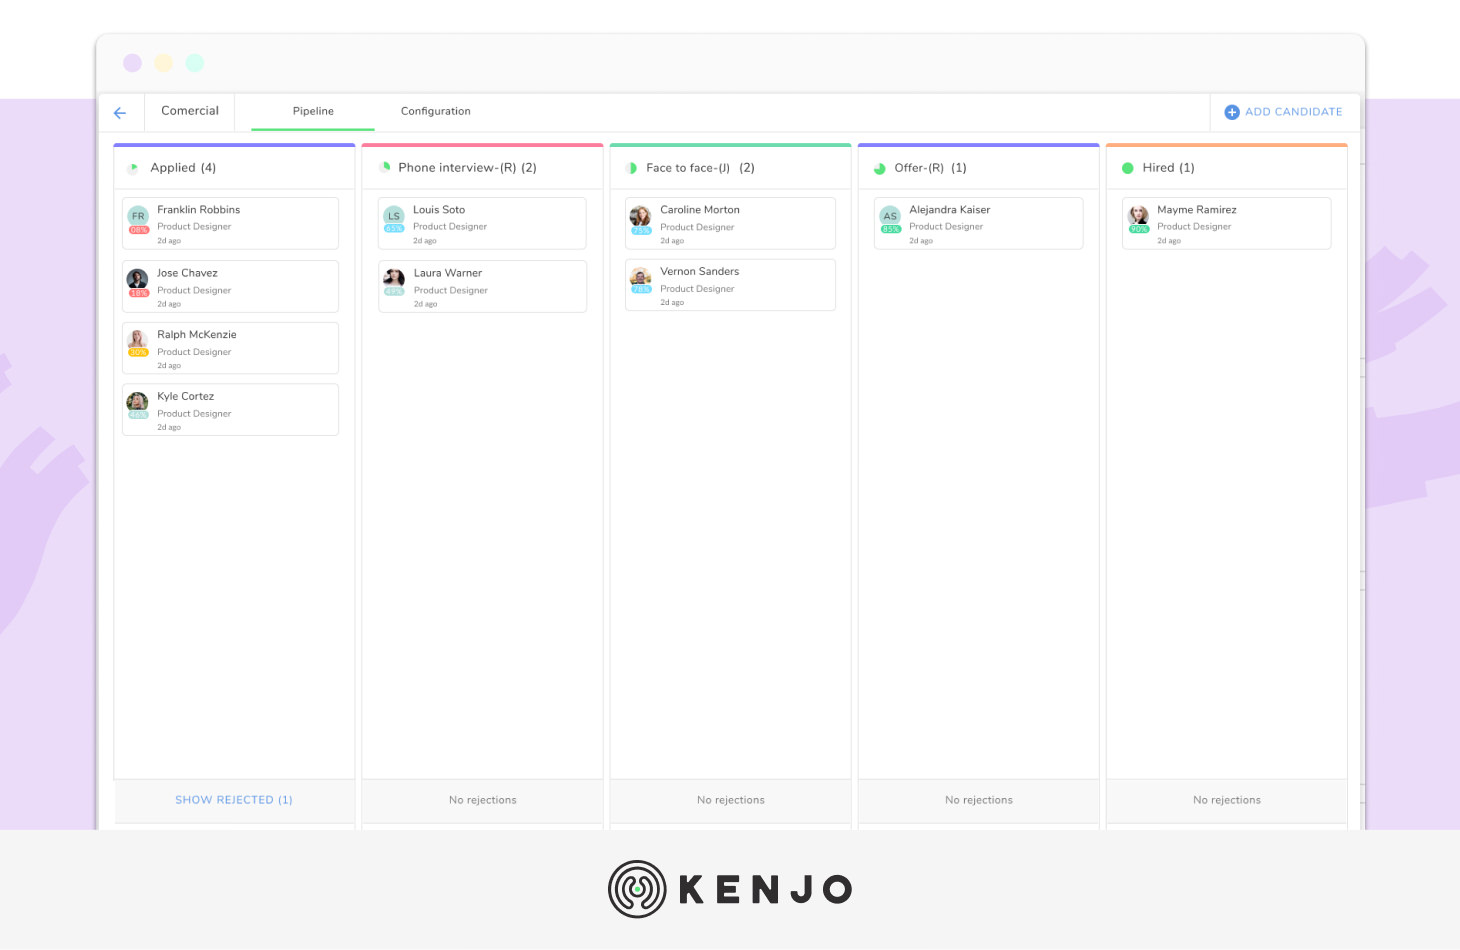 interface del software de reclutamiento de Kenjo